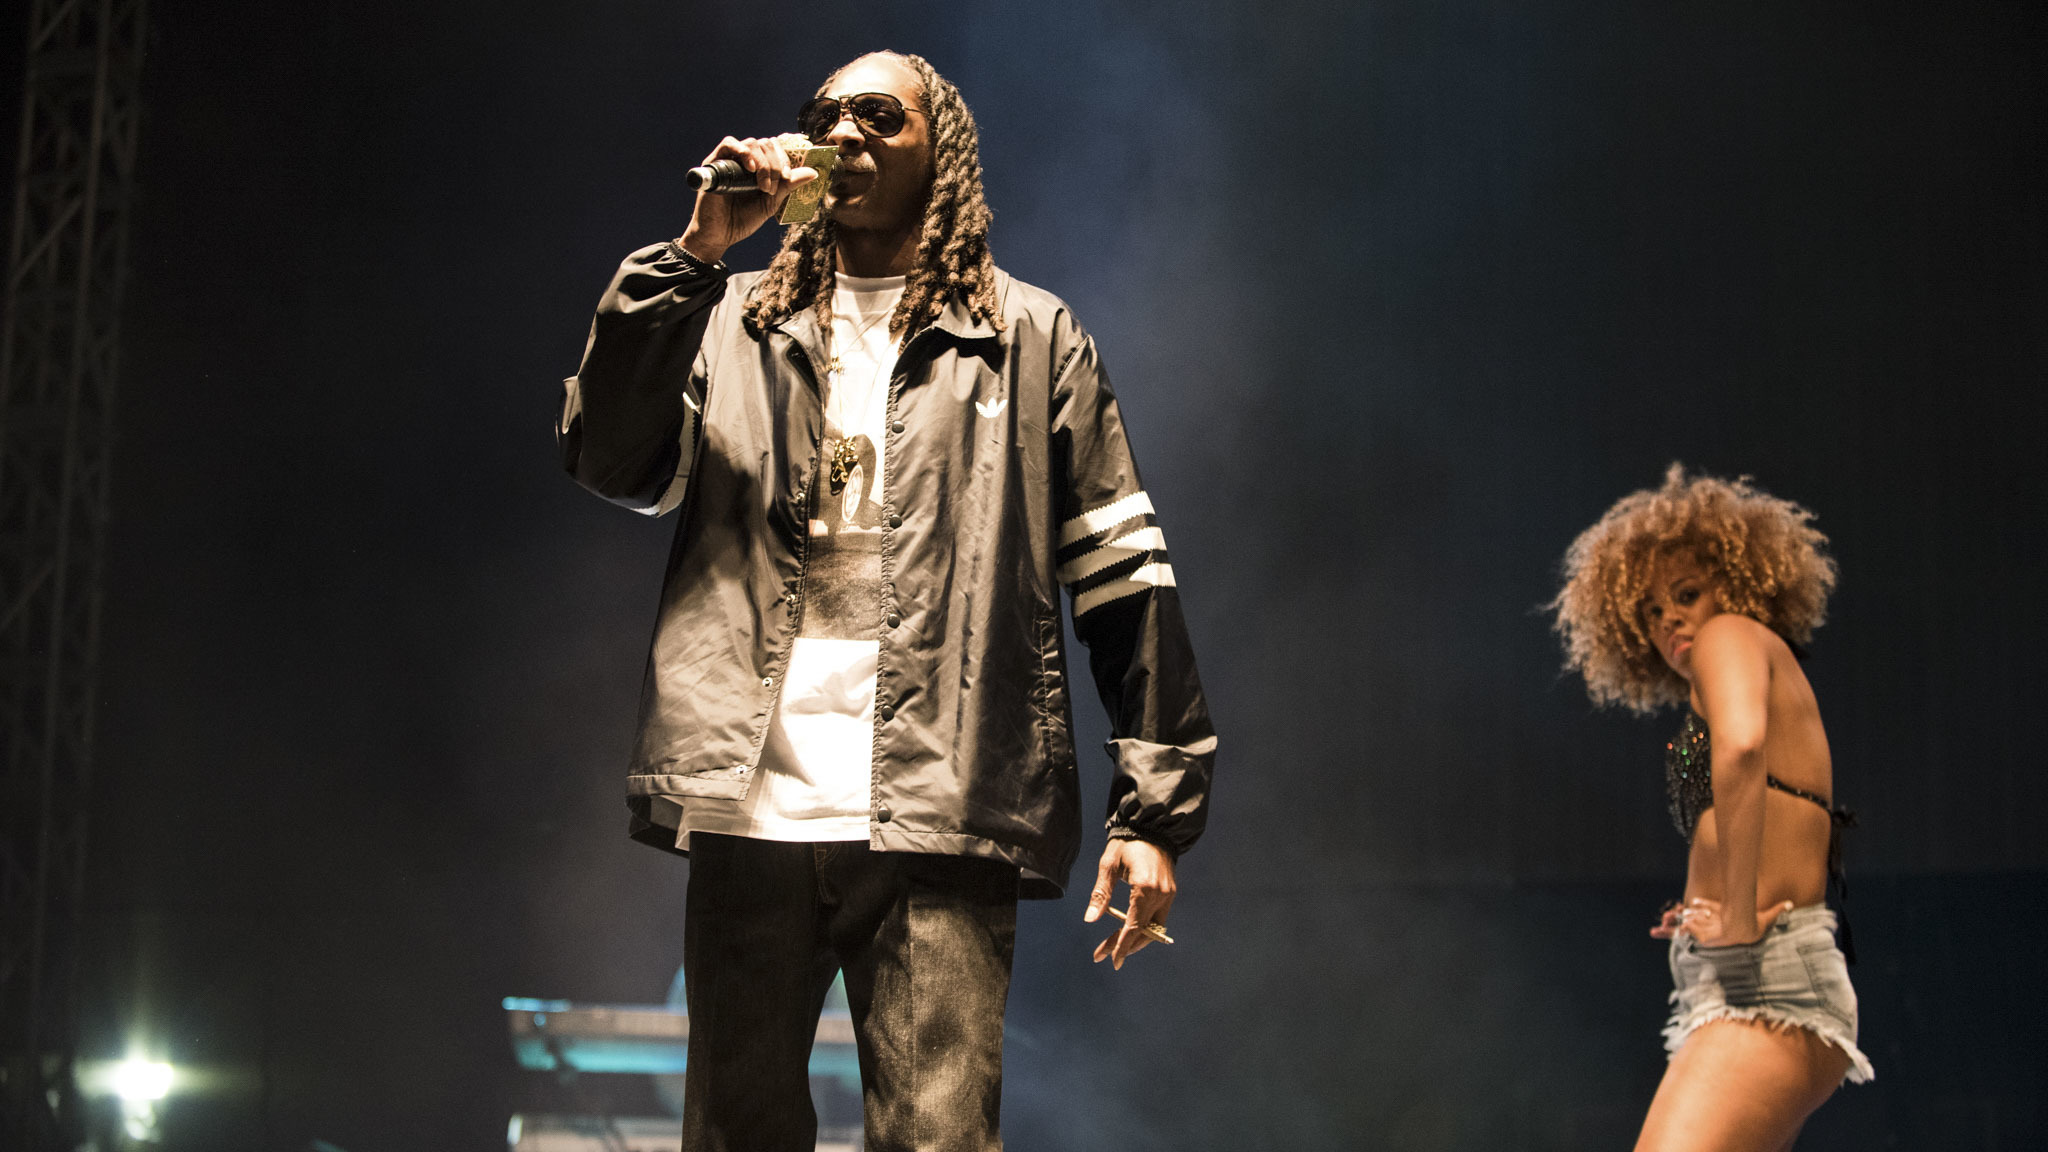 Snoop Dogg turned in a set on the final day of Riot Fest, September 13, 2015.